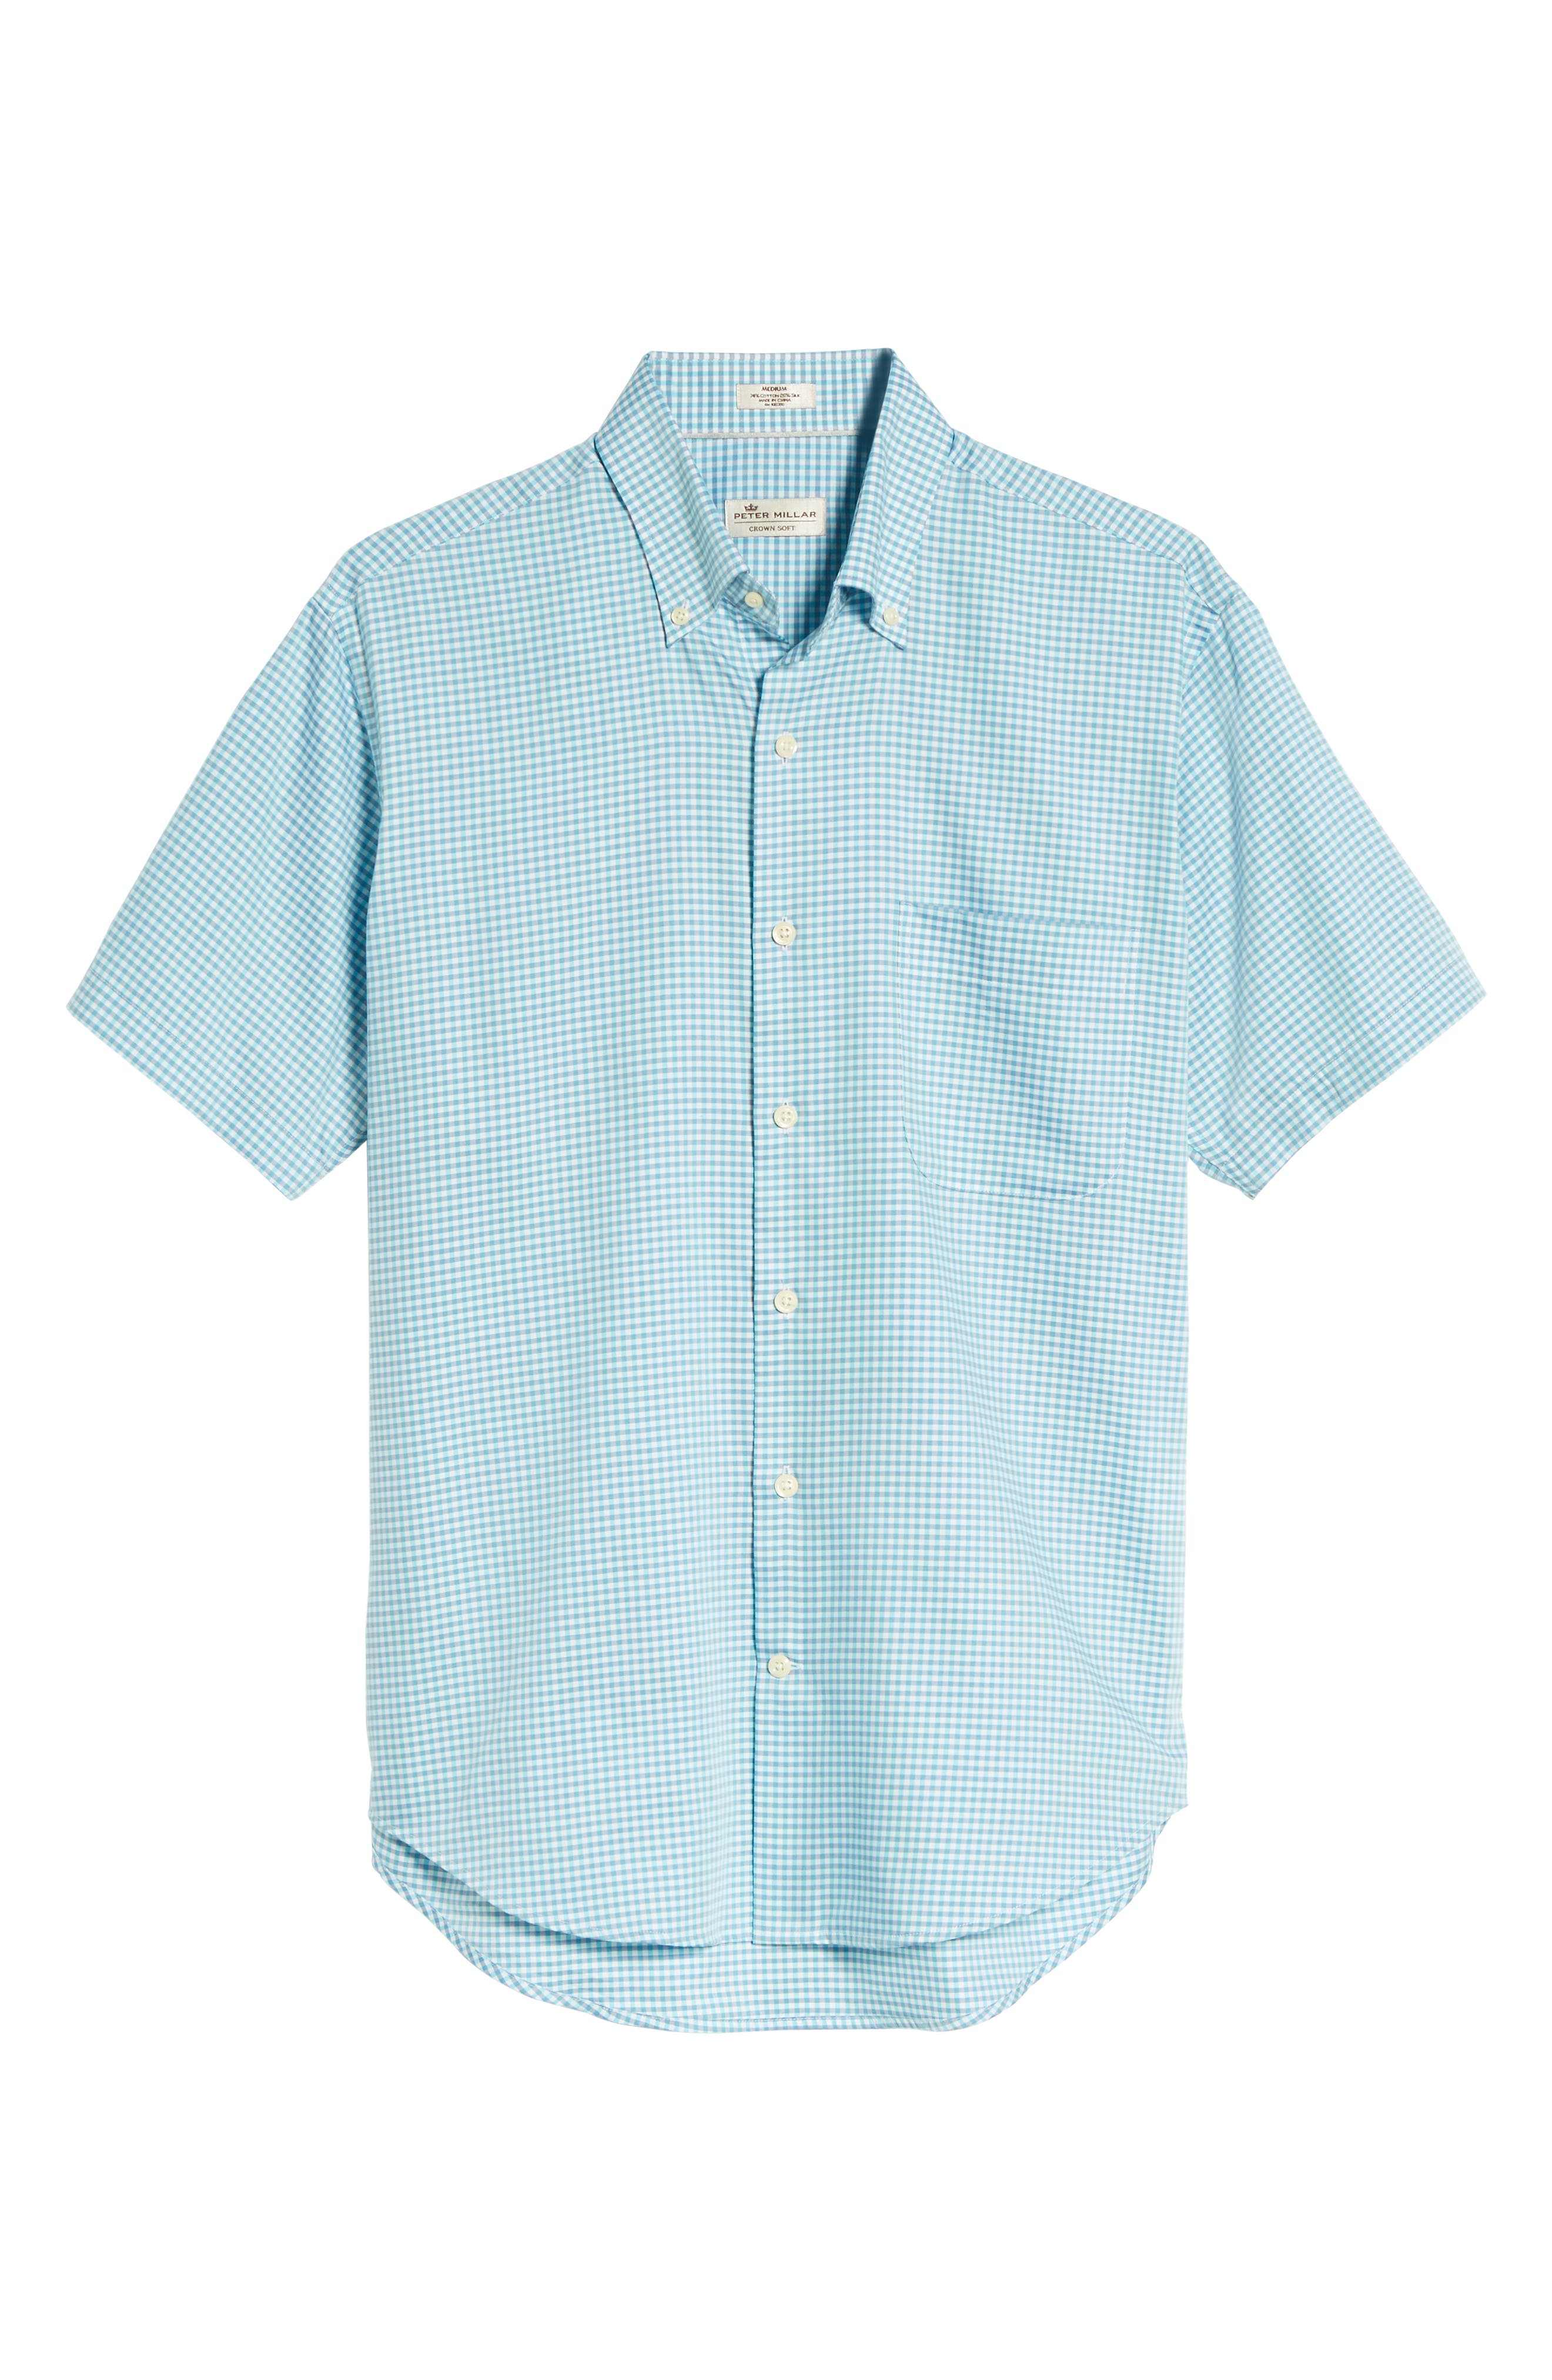 Crown Classic Fit Microcheck Sport Shirt,                             Alternate thumbnail 6, color,                             Tahoe Blue